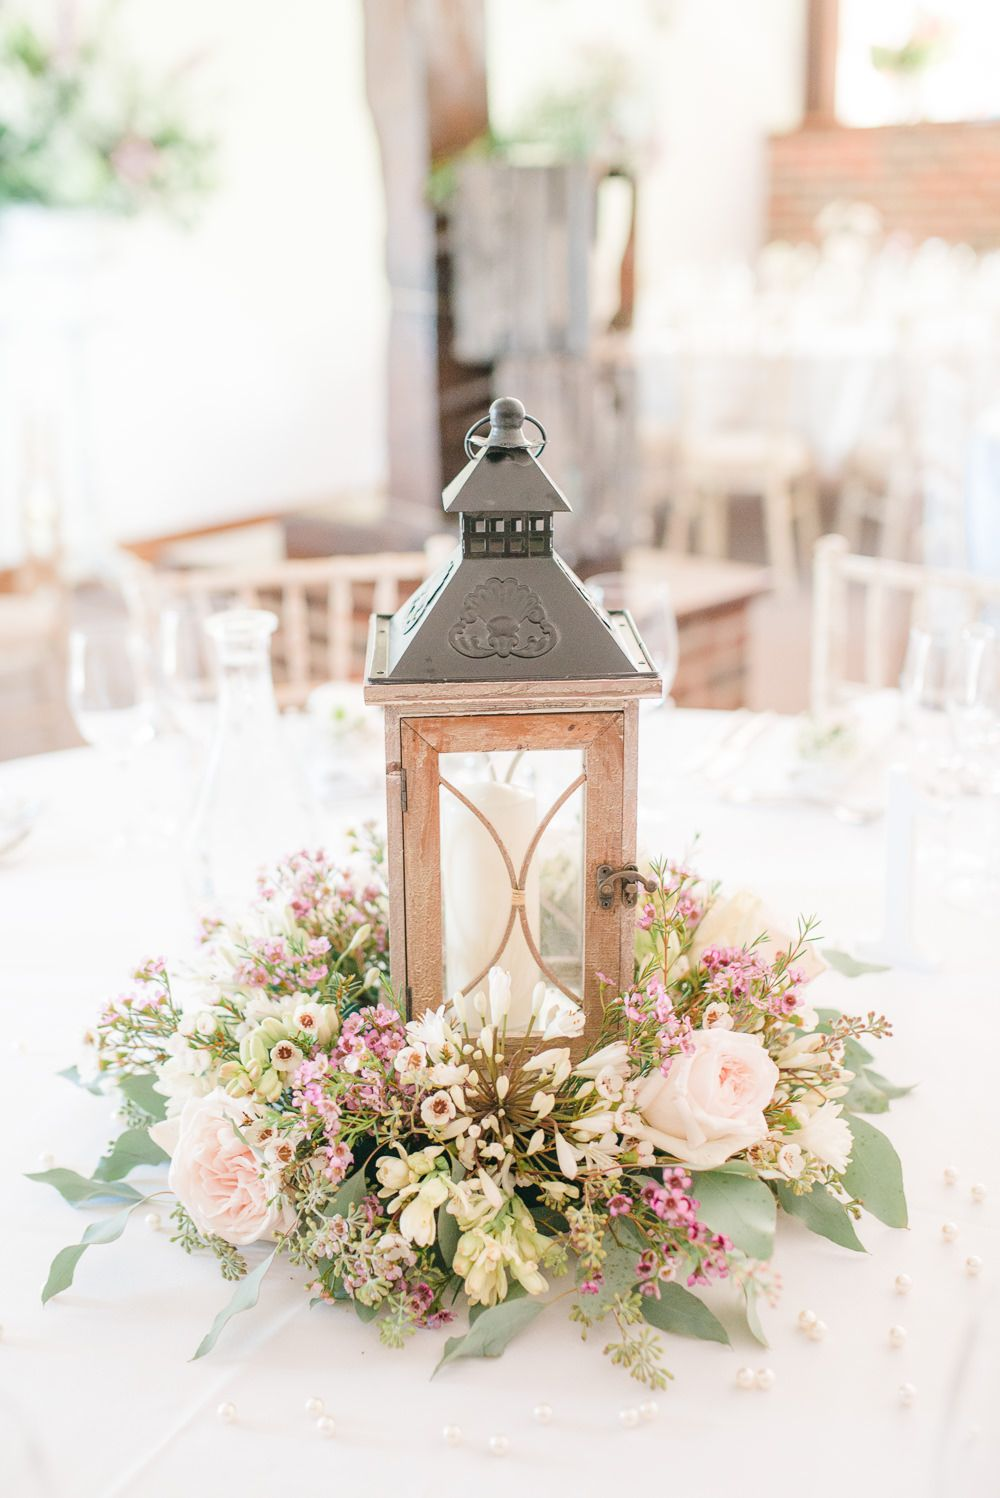 Lantern Centrepiece Pink Table Flowers Image By A Href Http